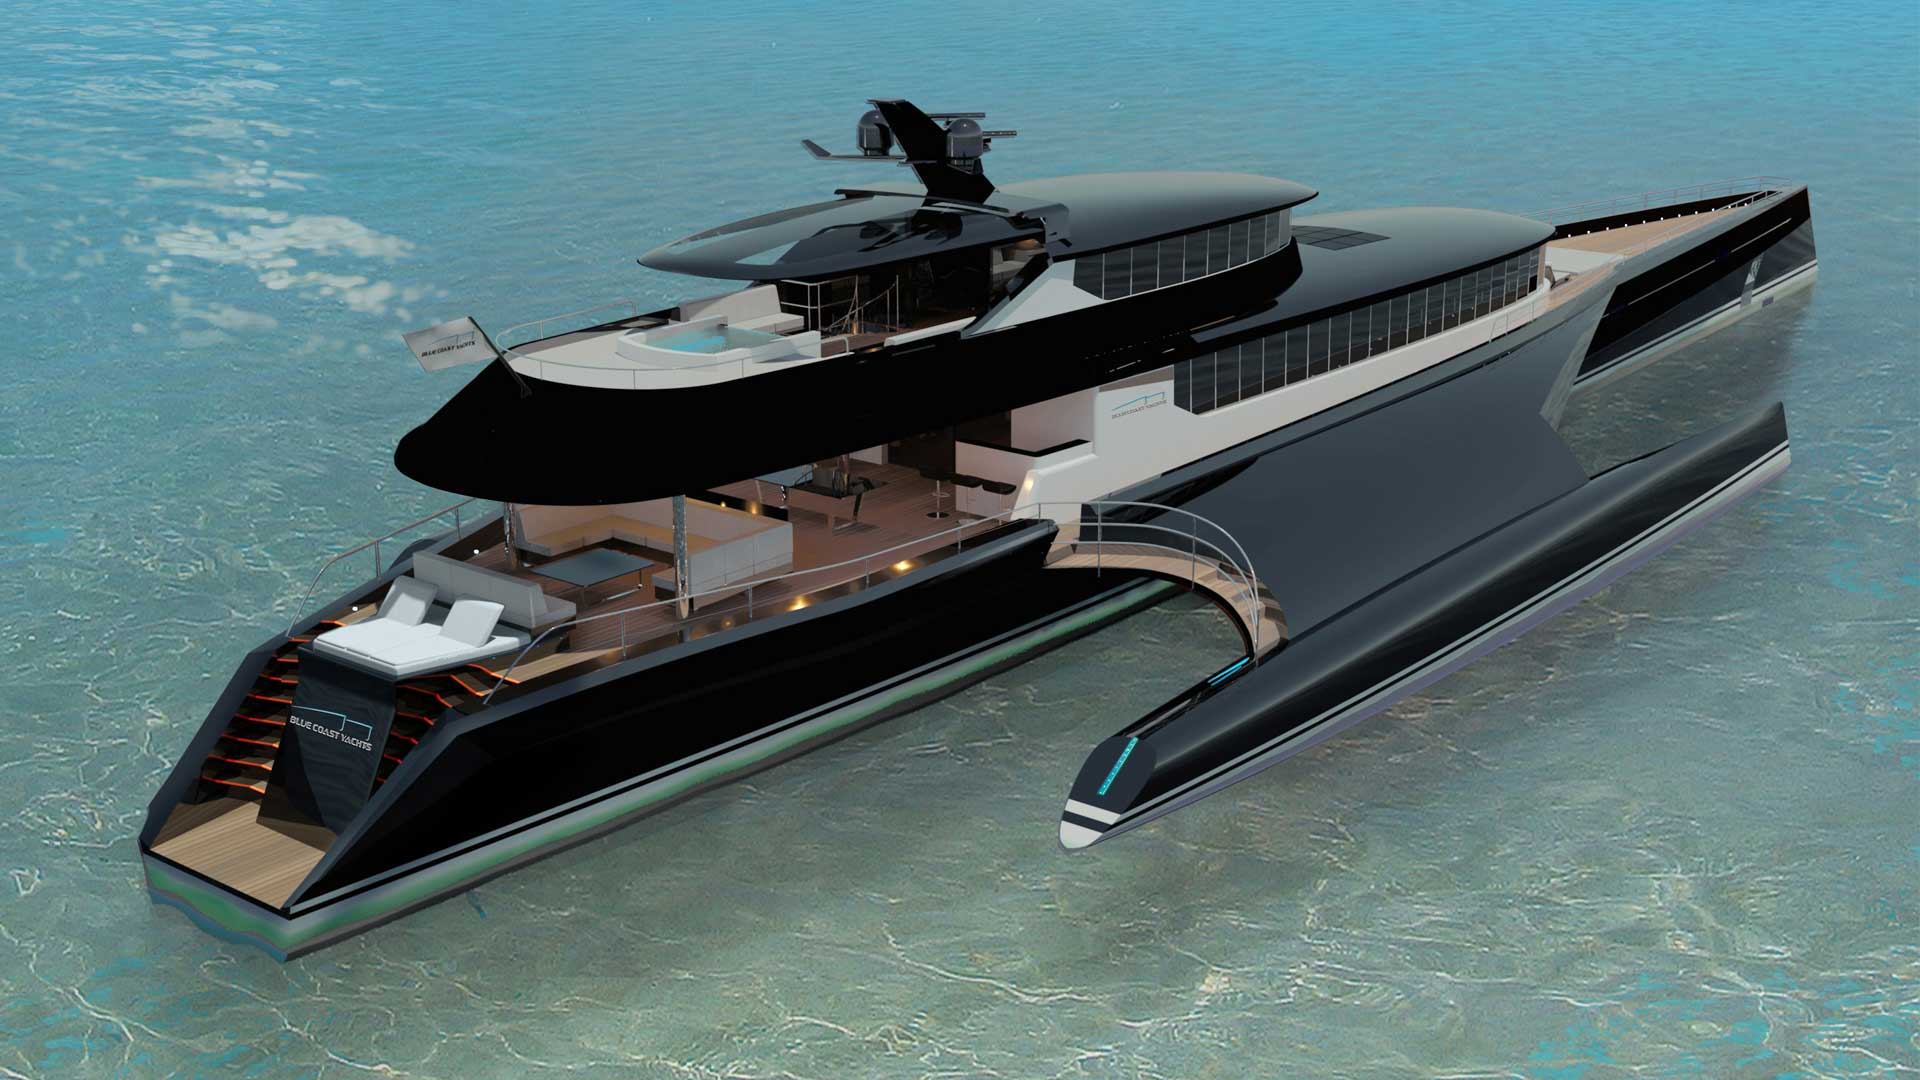 model electric boats with Superyacht Sunday 47 3 Million Trimaran Superyacht By Blue Coast Yachts on All New 2017 Dacia Duster Retains Eu11 990 Starting Price In France besides Elk Mercedes Electric Concept Car as well Boats further Land Rover Series 2a together with SUP Paddle Board Motor Mount.